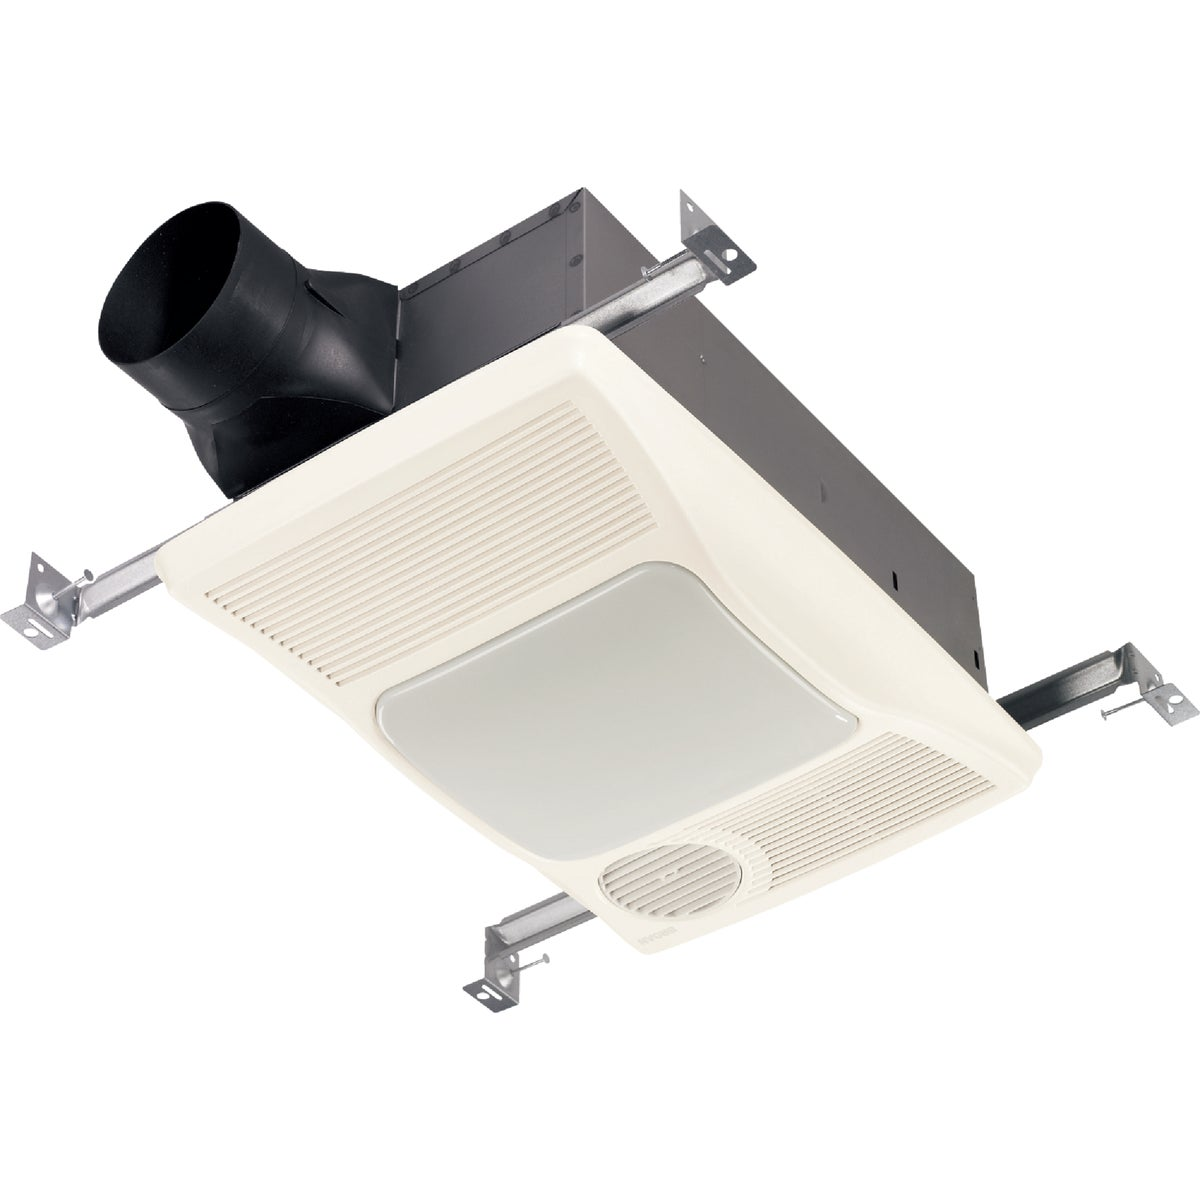 100CFM LGHT/HTR BATH FAN - 100HL by Broan Nutone